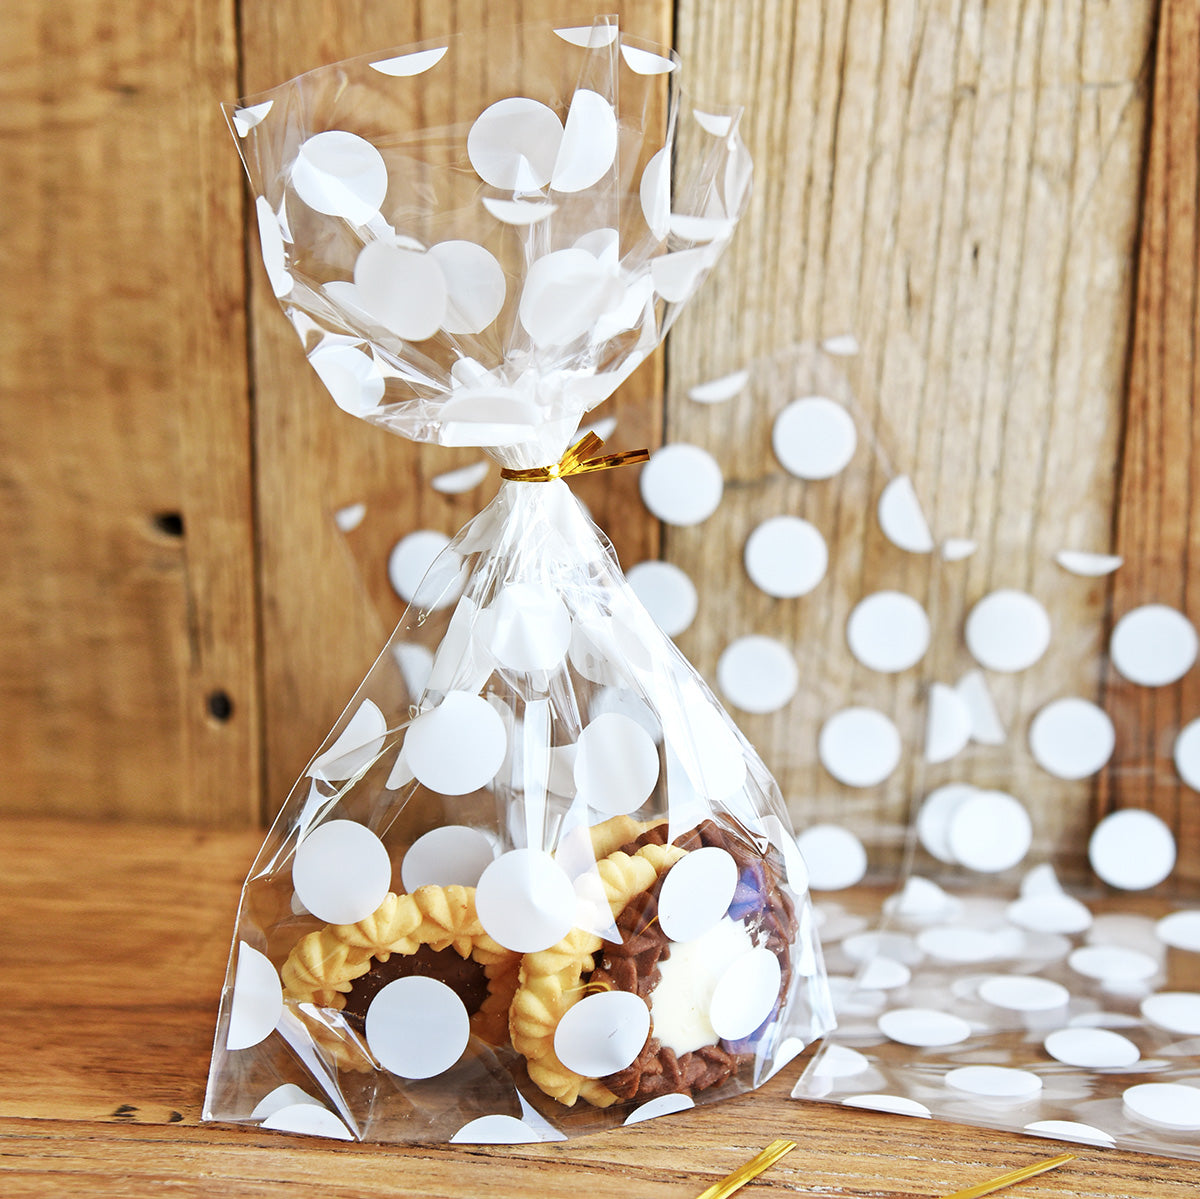 White Polka Dots Plastic Gift Bags 100 Pieces